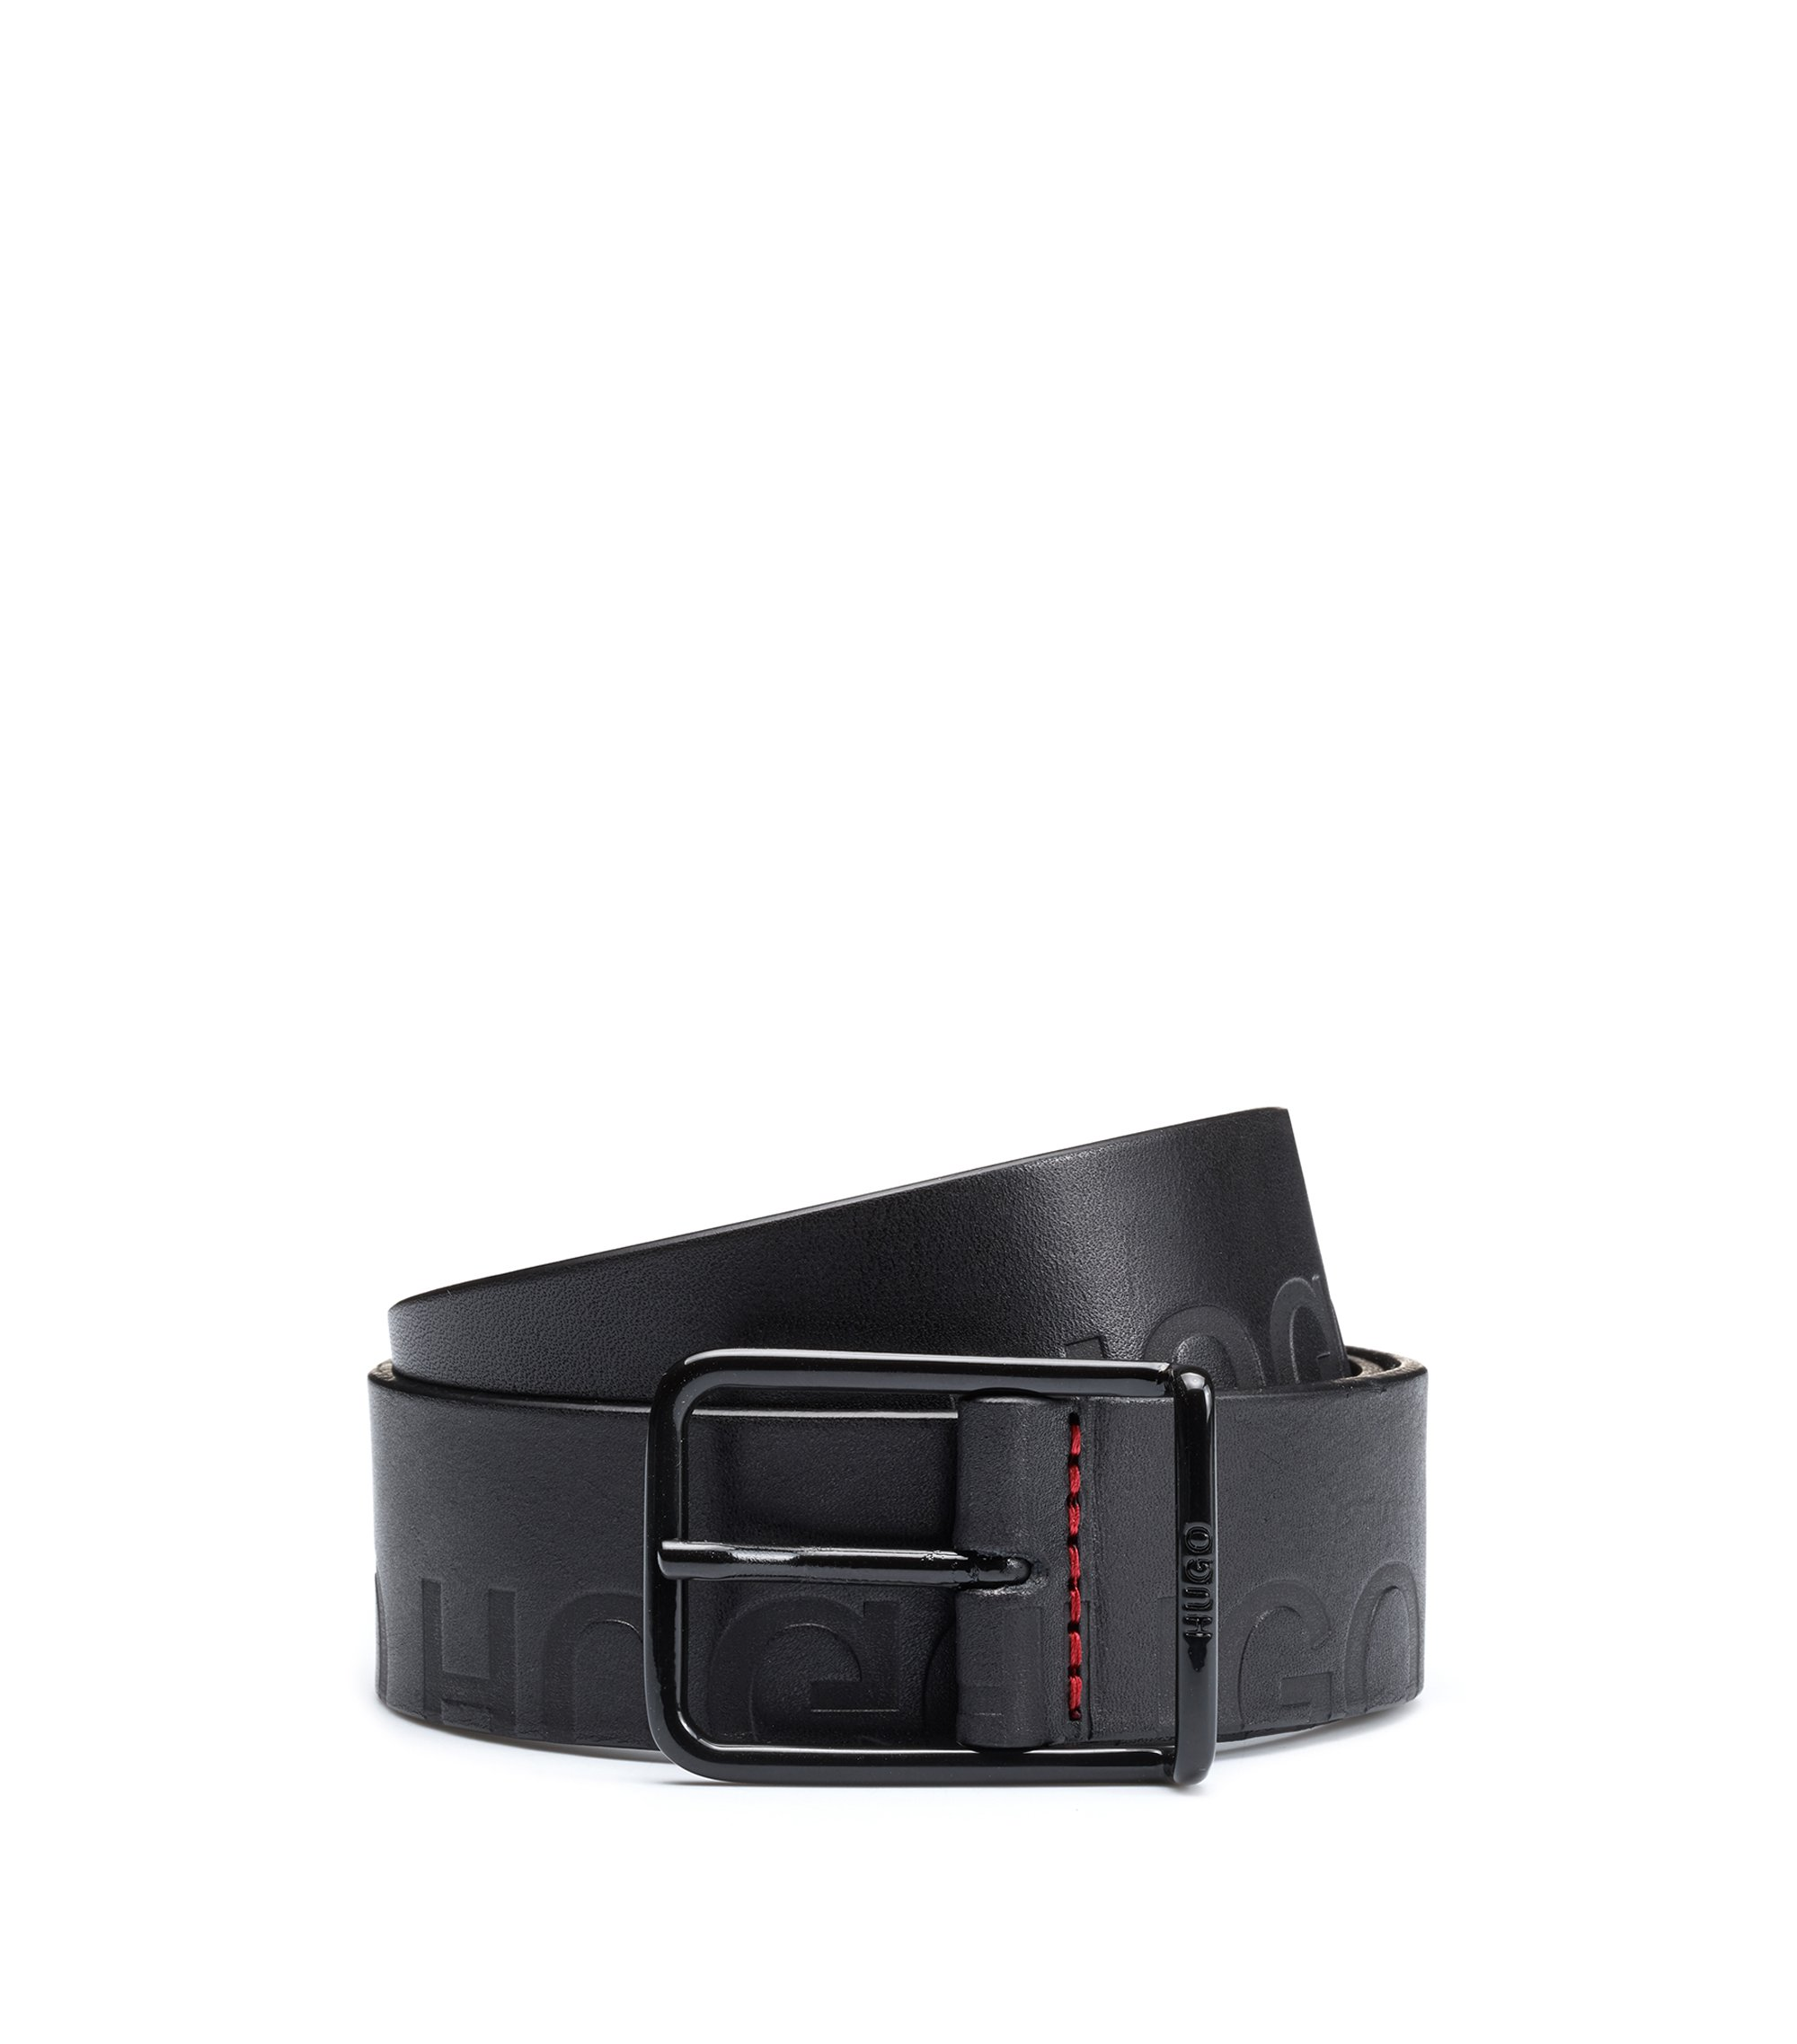 Leather belt with lasered logo detailing, Black